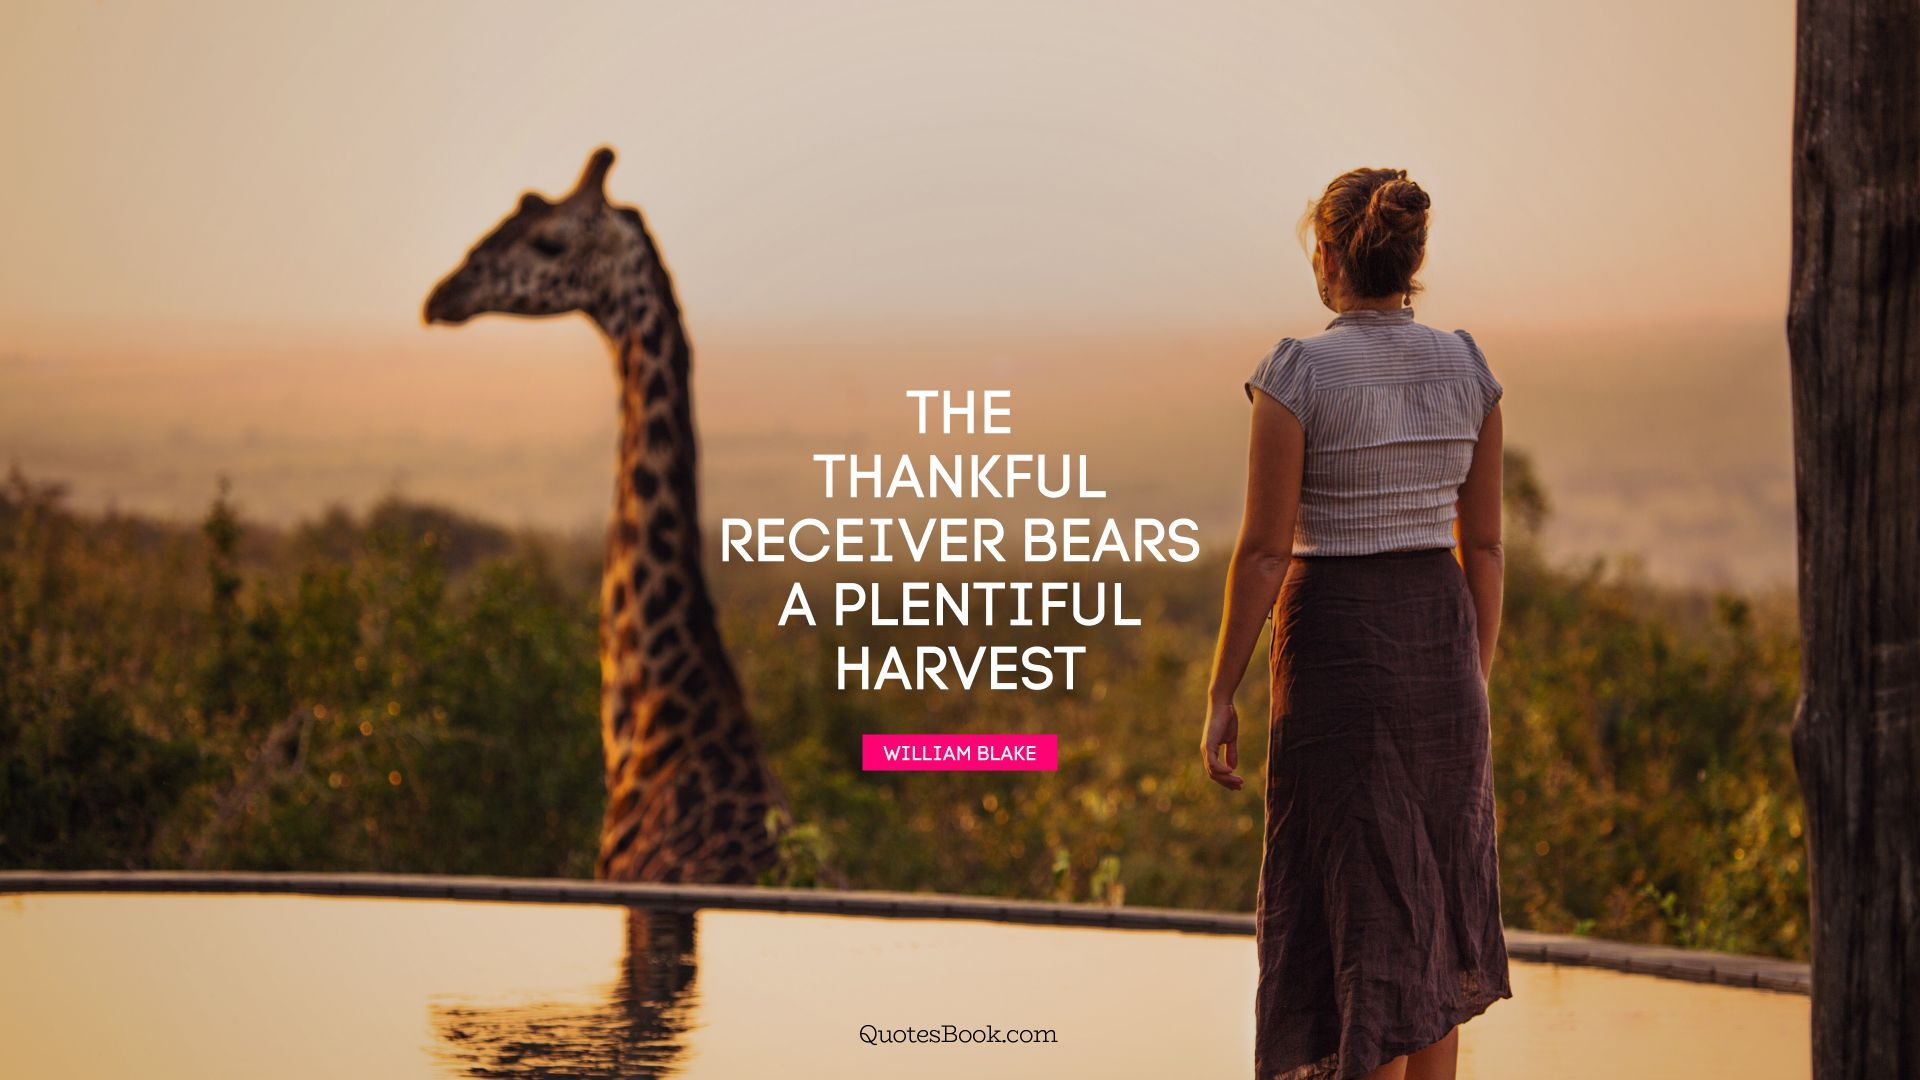 The thankful receiver bears a plentiful harvest. - Quote by William Blake